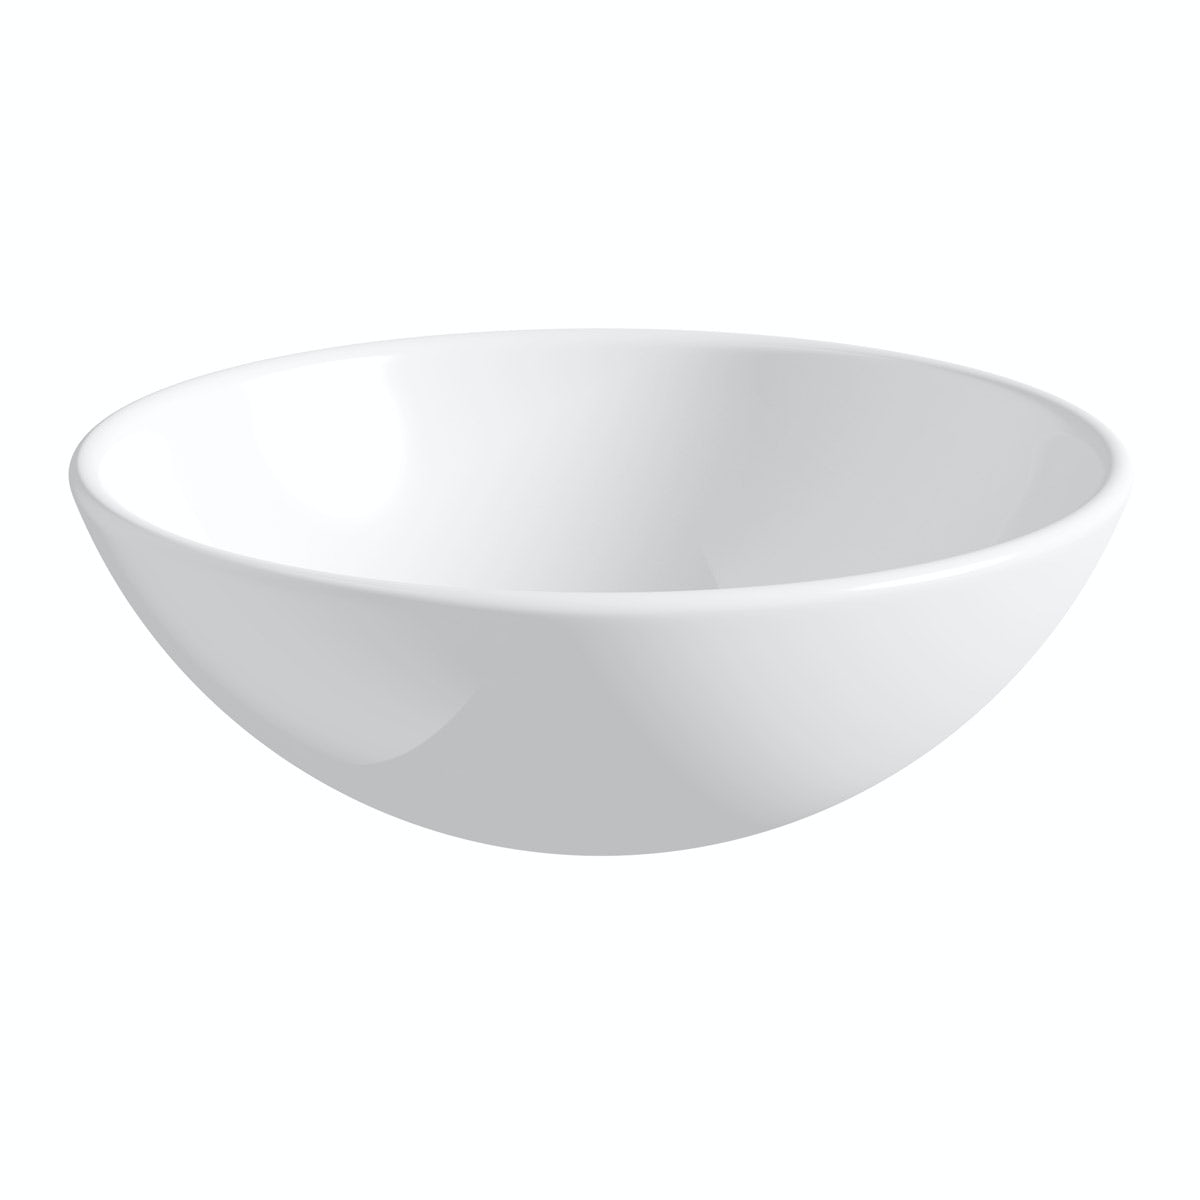 Orchard Tahoe countertop basin diameter 275mm